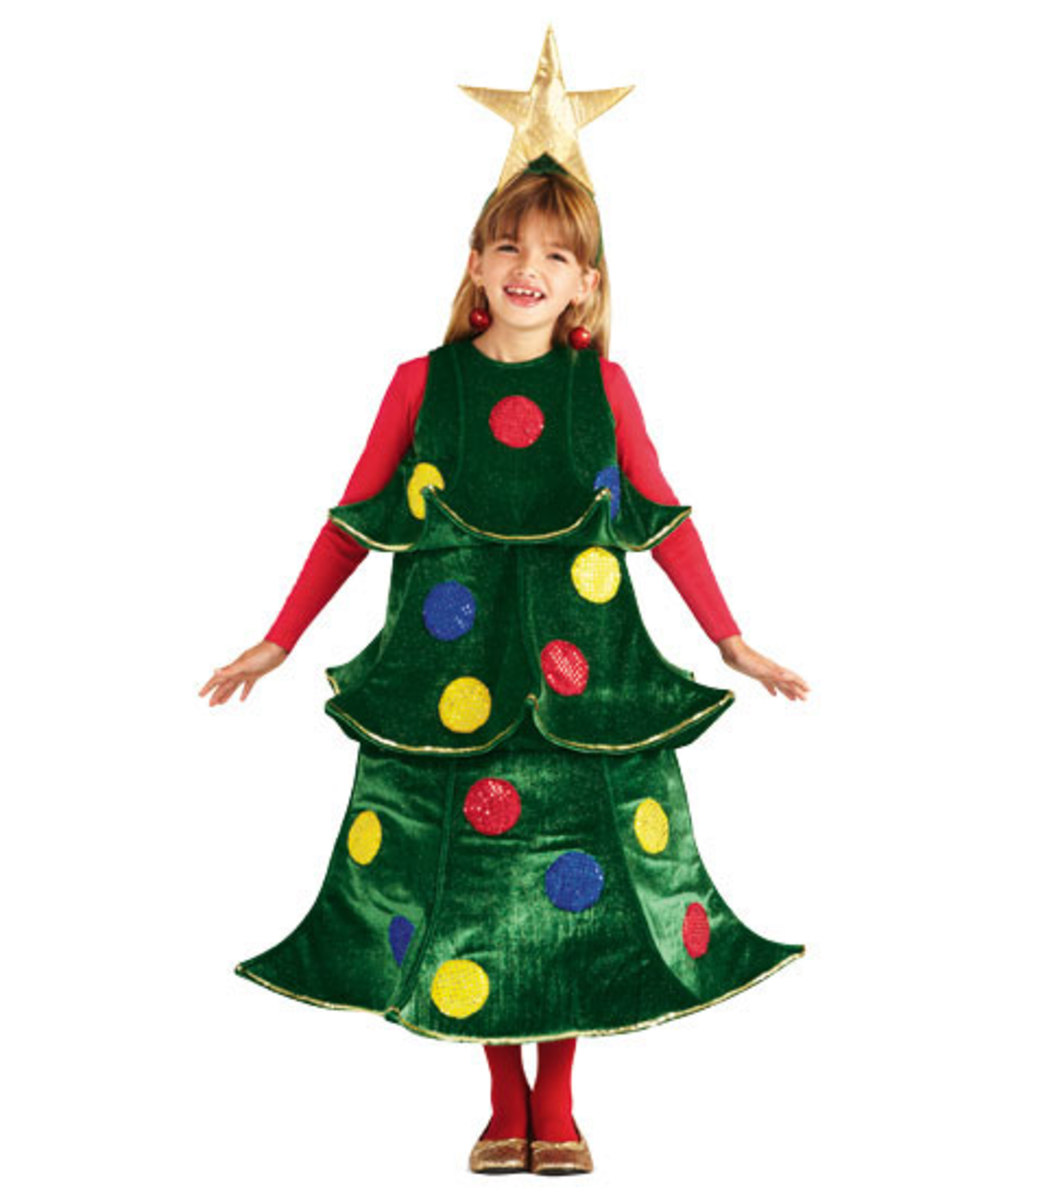 Christmas Tree Costume Ideas and Inspiration H0uoMuLN